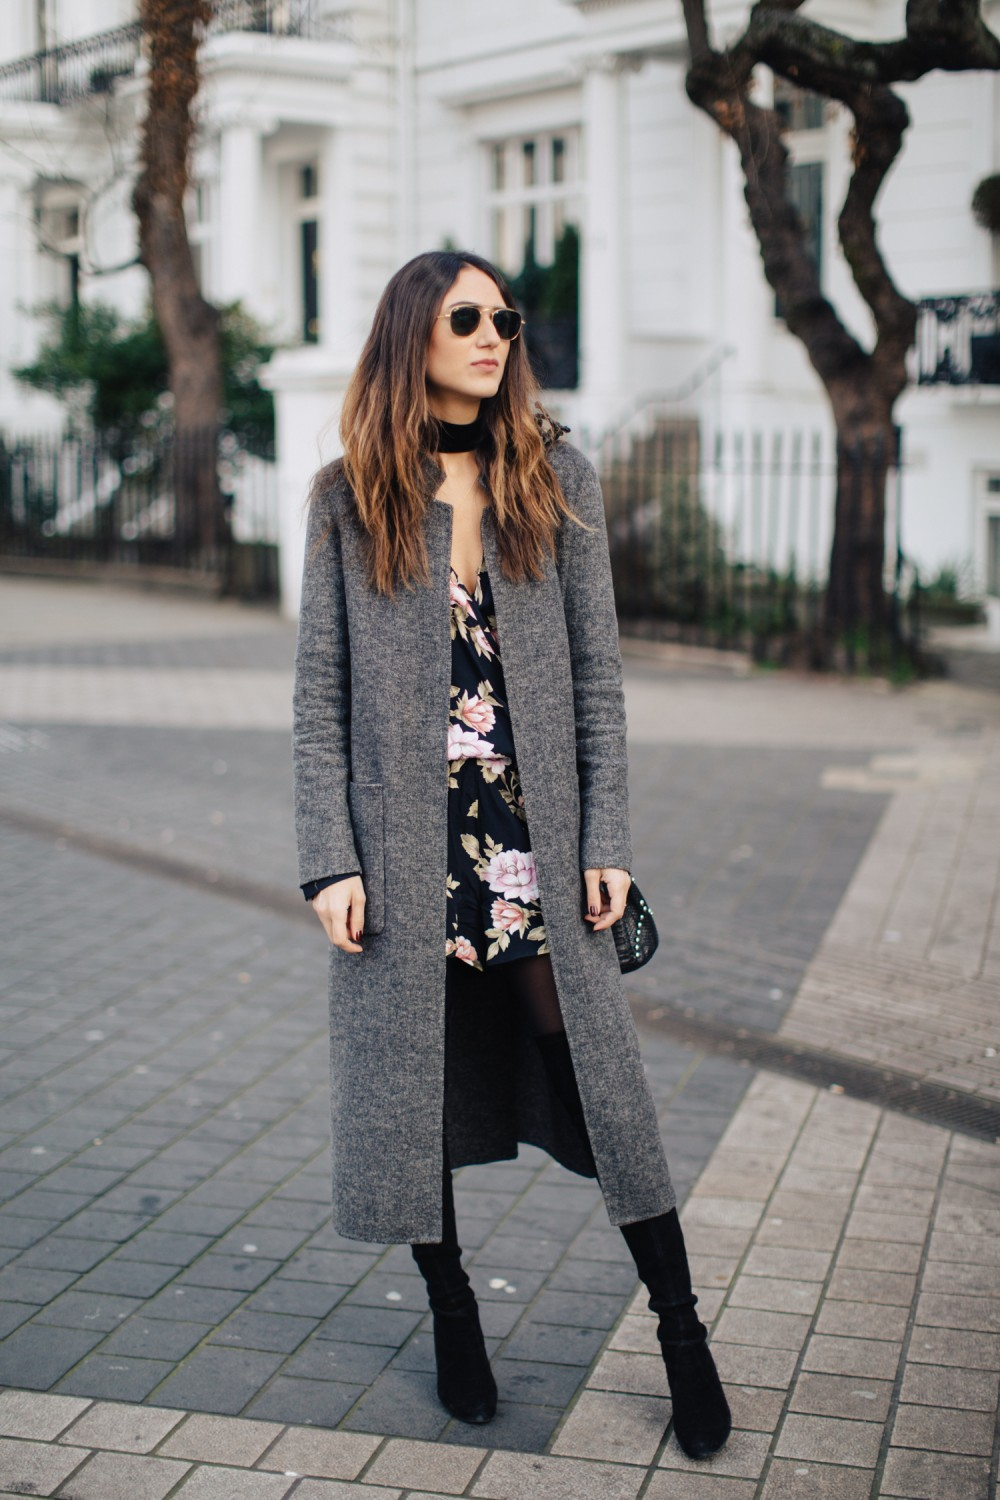 We love this floral playsuit from Blue Life, worn by Soraya Bakhtiar with a simplistic grey overcoat and paired with over the knee boots! Floral prints are always a winner, we suggest you get yours ready! Coat: Zara, Playsuit: Blue Life, Bag: Helmer, Boots: Stuart Weitzman.